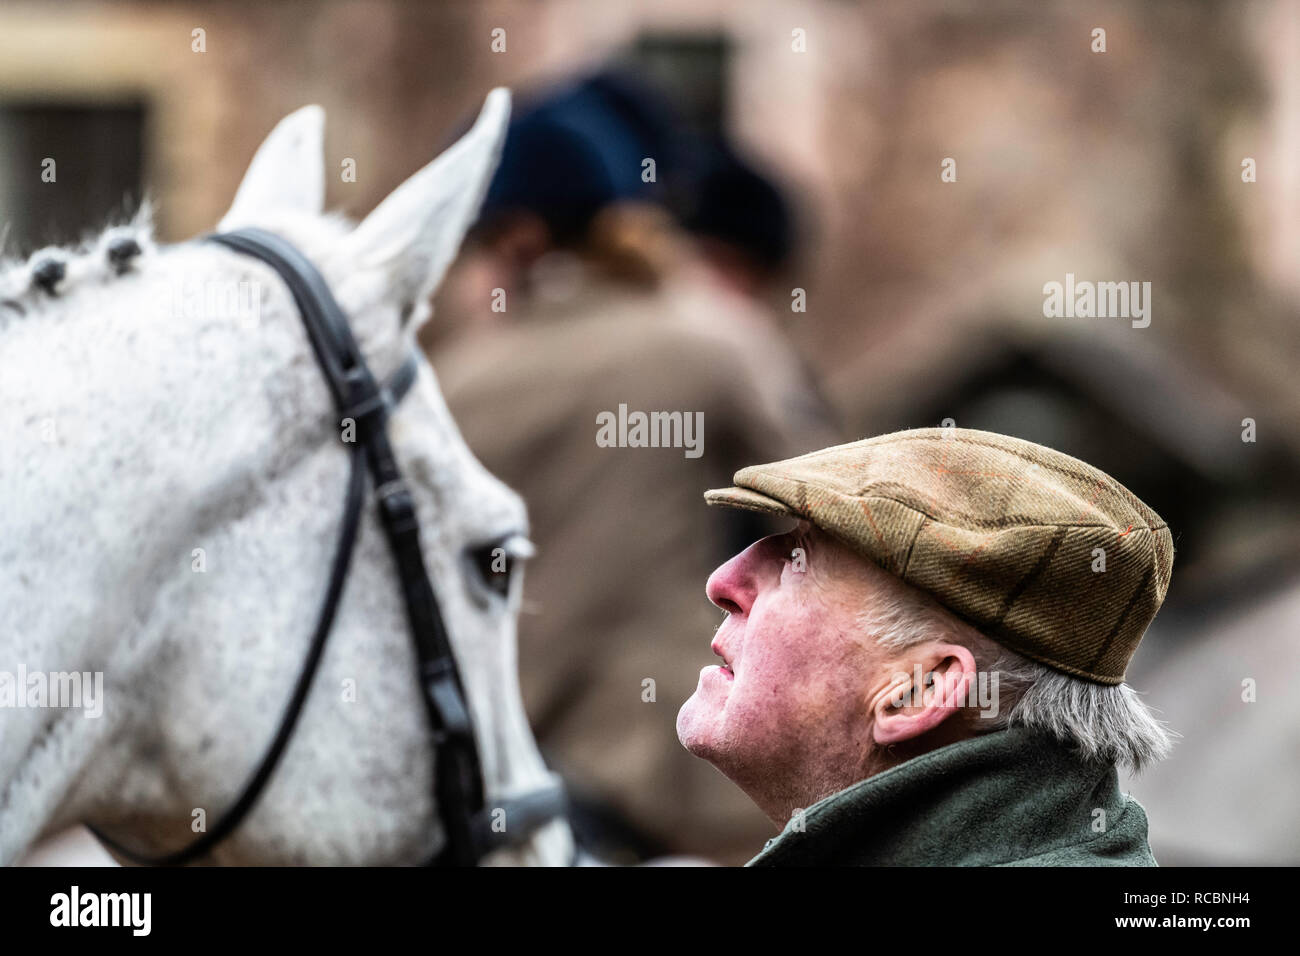 Wooler, Northumberland, England, UK. 15th January 2019. Martin Letts, Master of the College Valley and revered in the hunting community as one of the finest breeders of foxhounds, in both the UK and US. The Duke of Beaufort Hunt, one of the largest and most prestigous packs in the British Isles, were hosted by the College Valley Hunt in Northumberland, laying trails over challenging steep hill country in the Cheviots. Credit: Chris Strickland / Alamy Live News - Stock Image